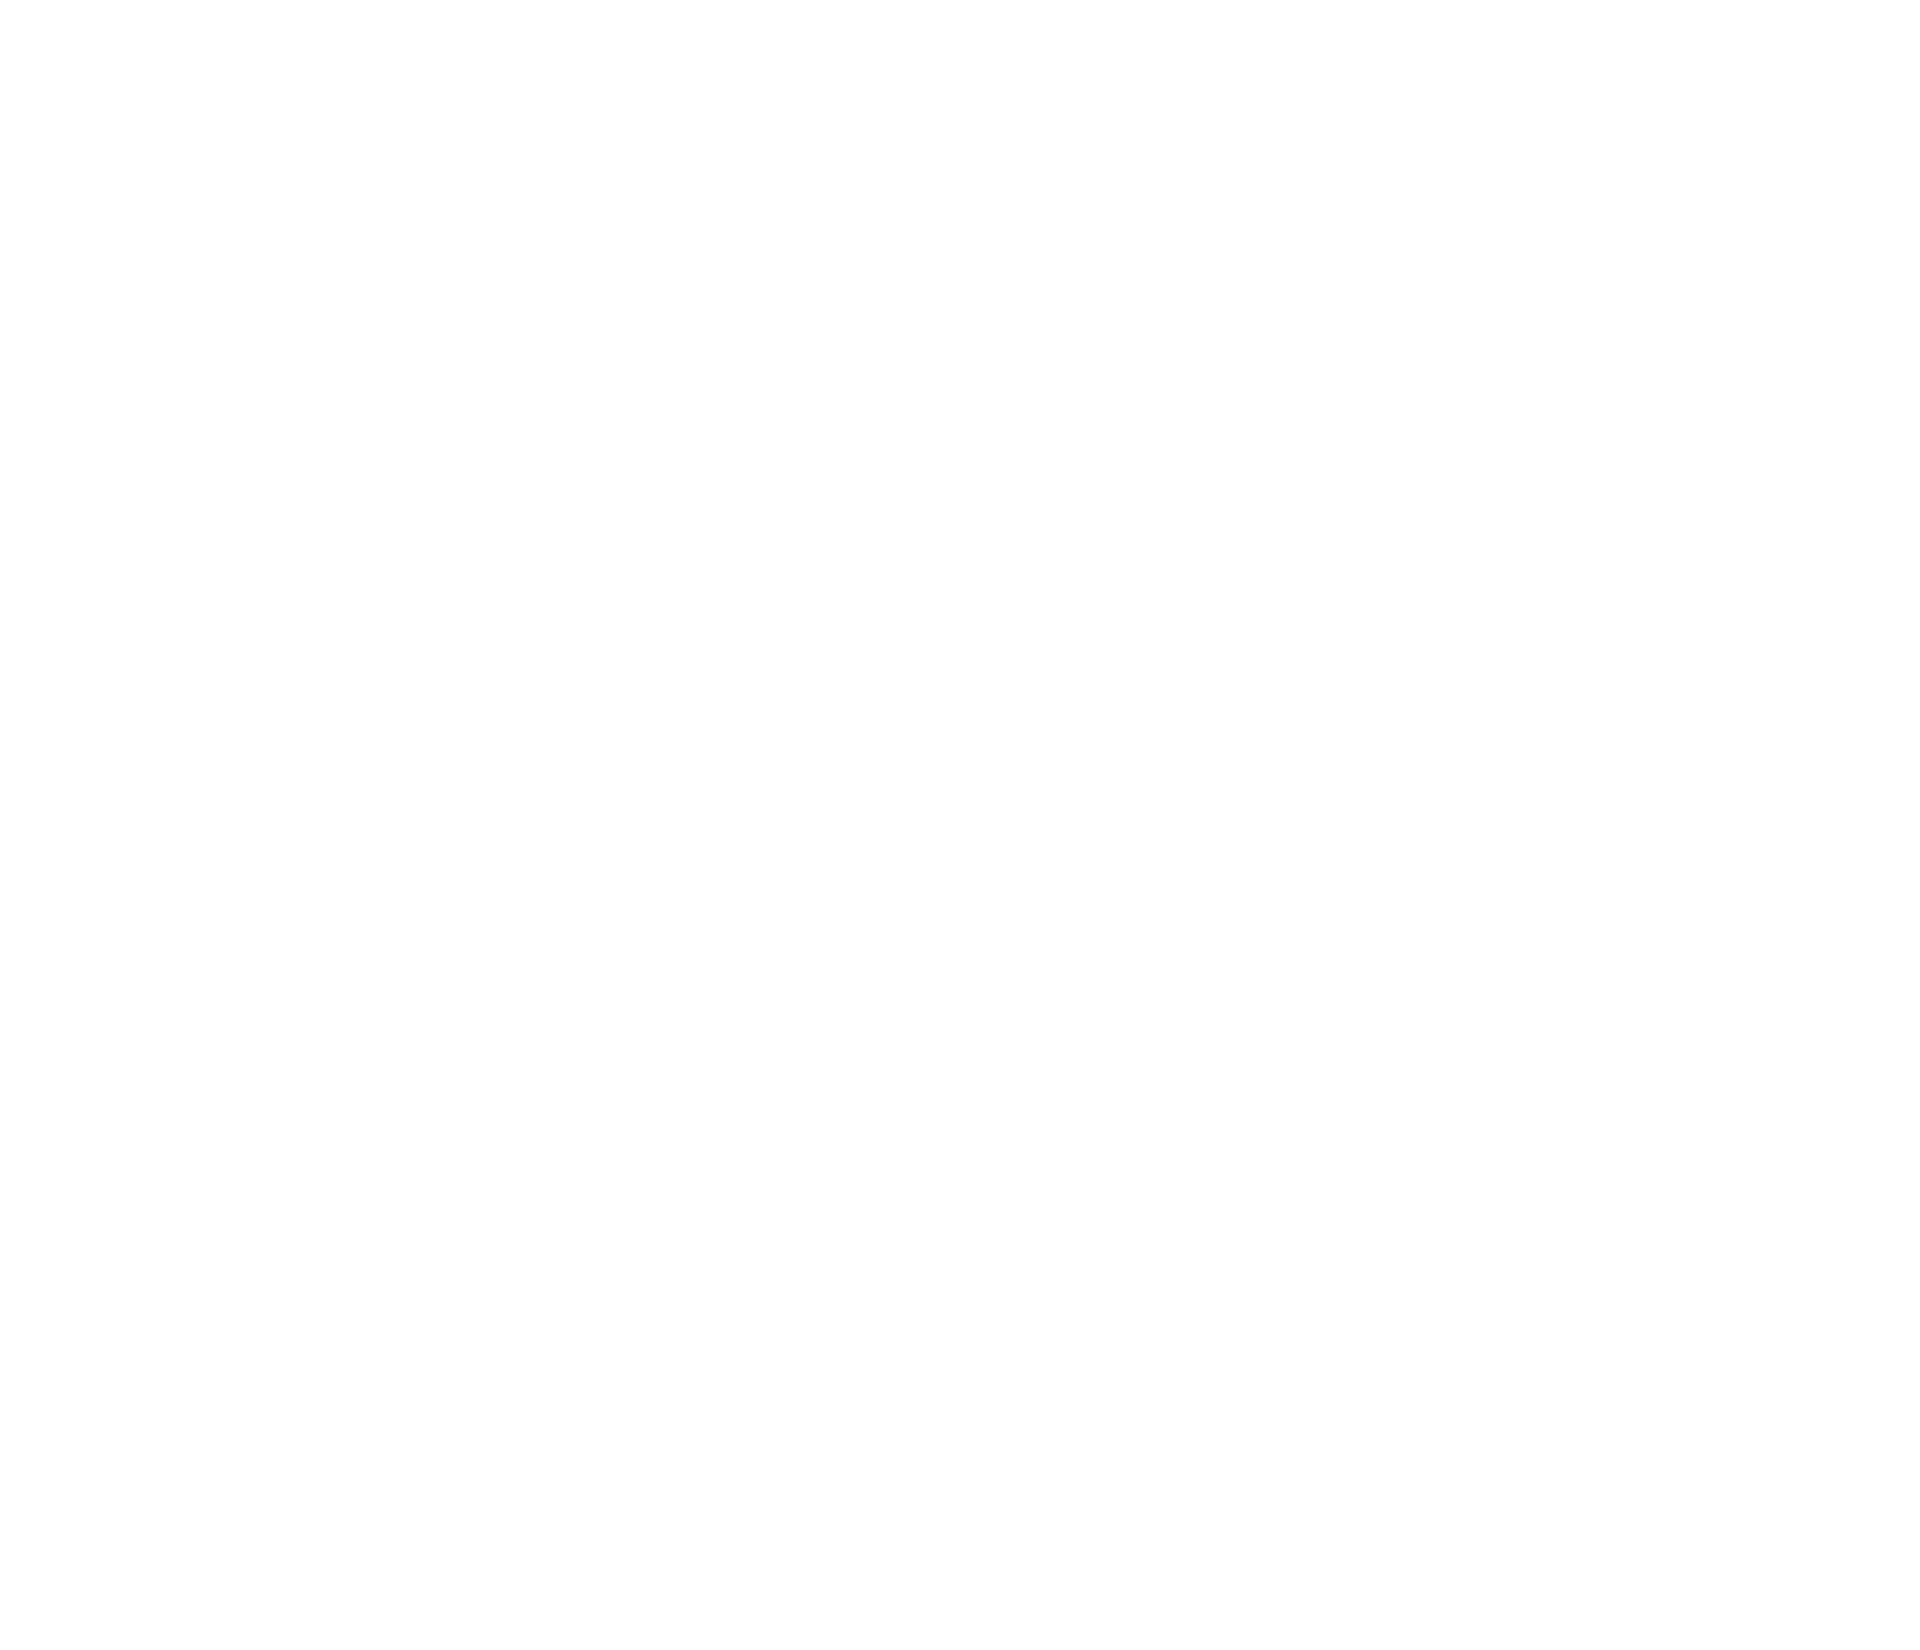 SFE's 